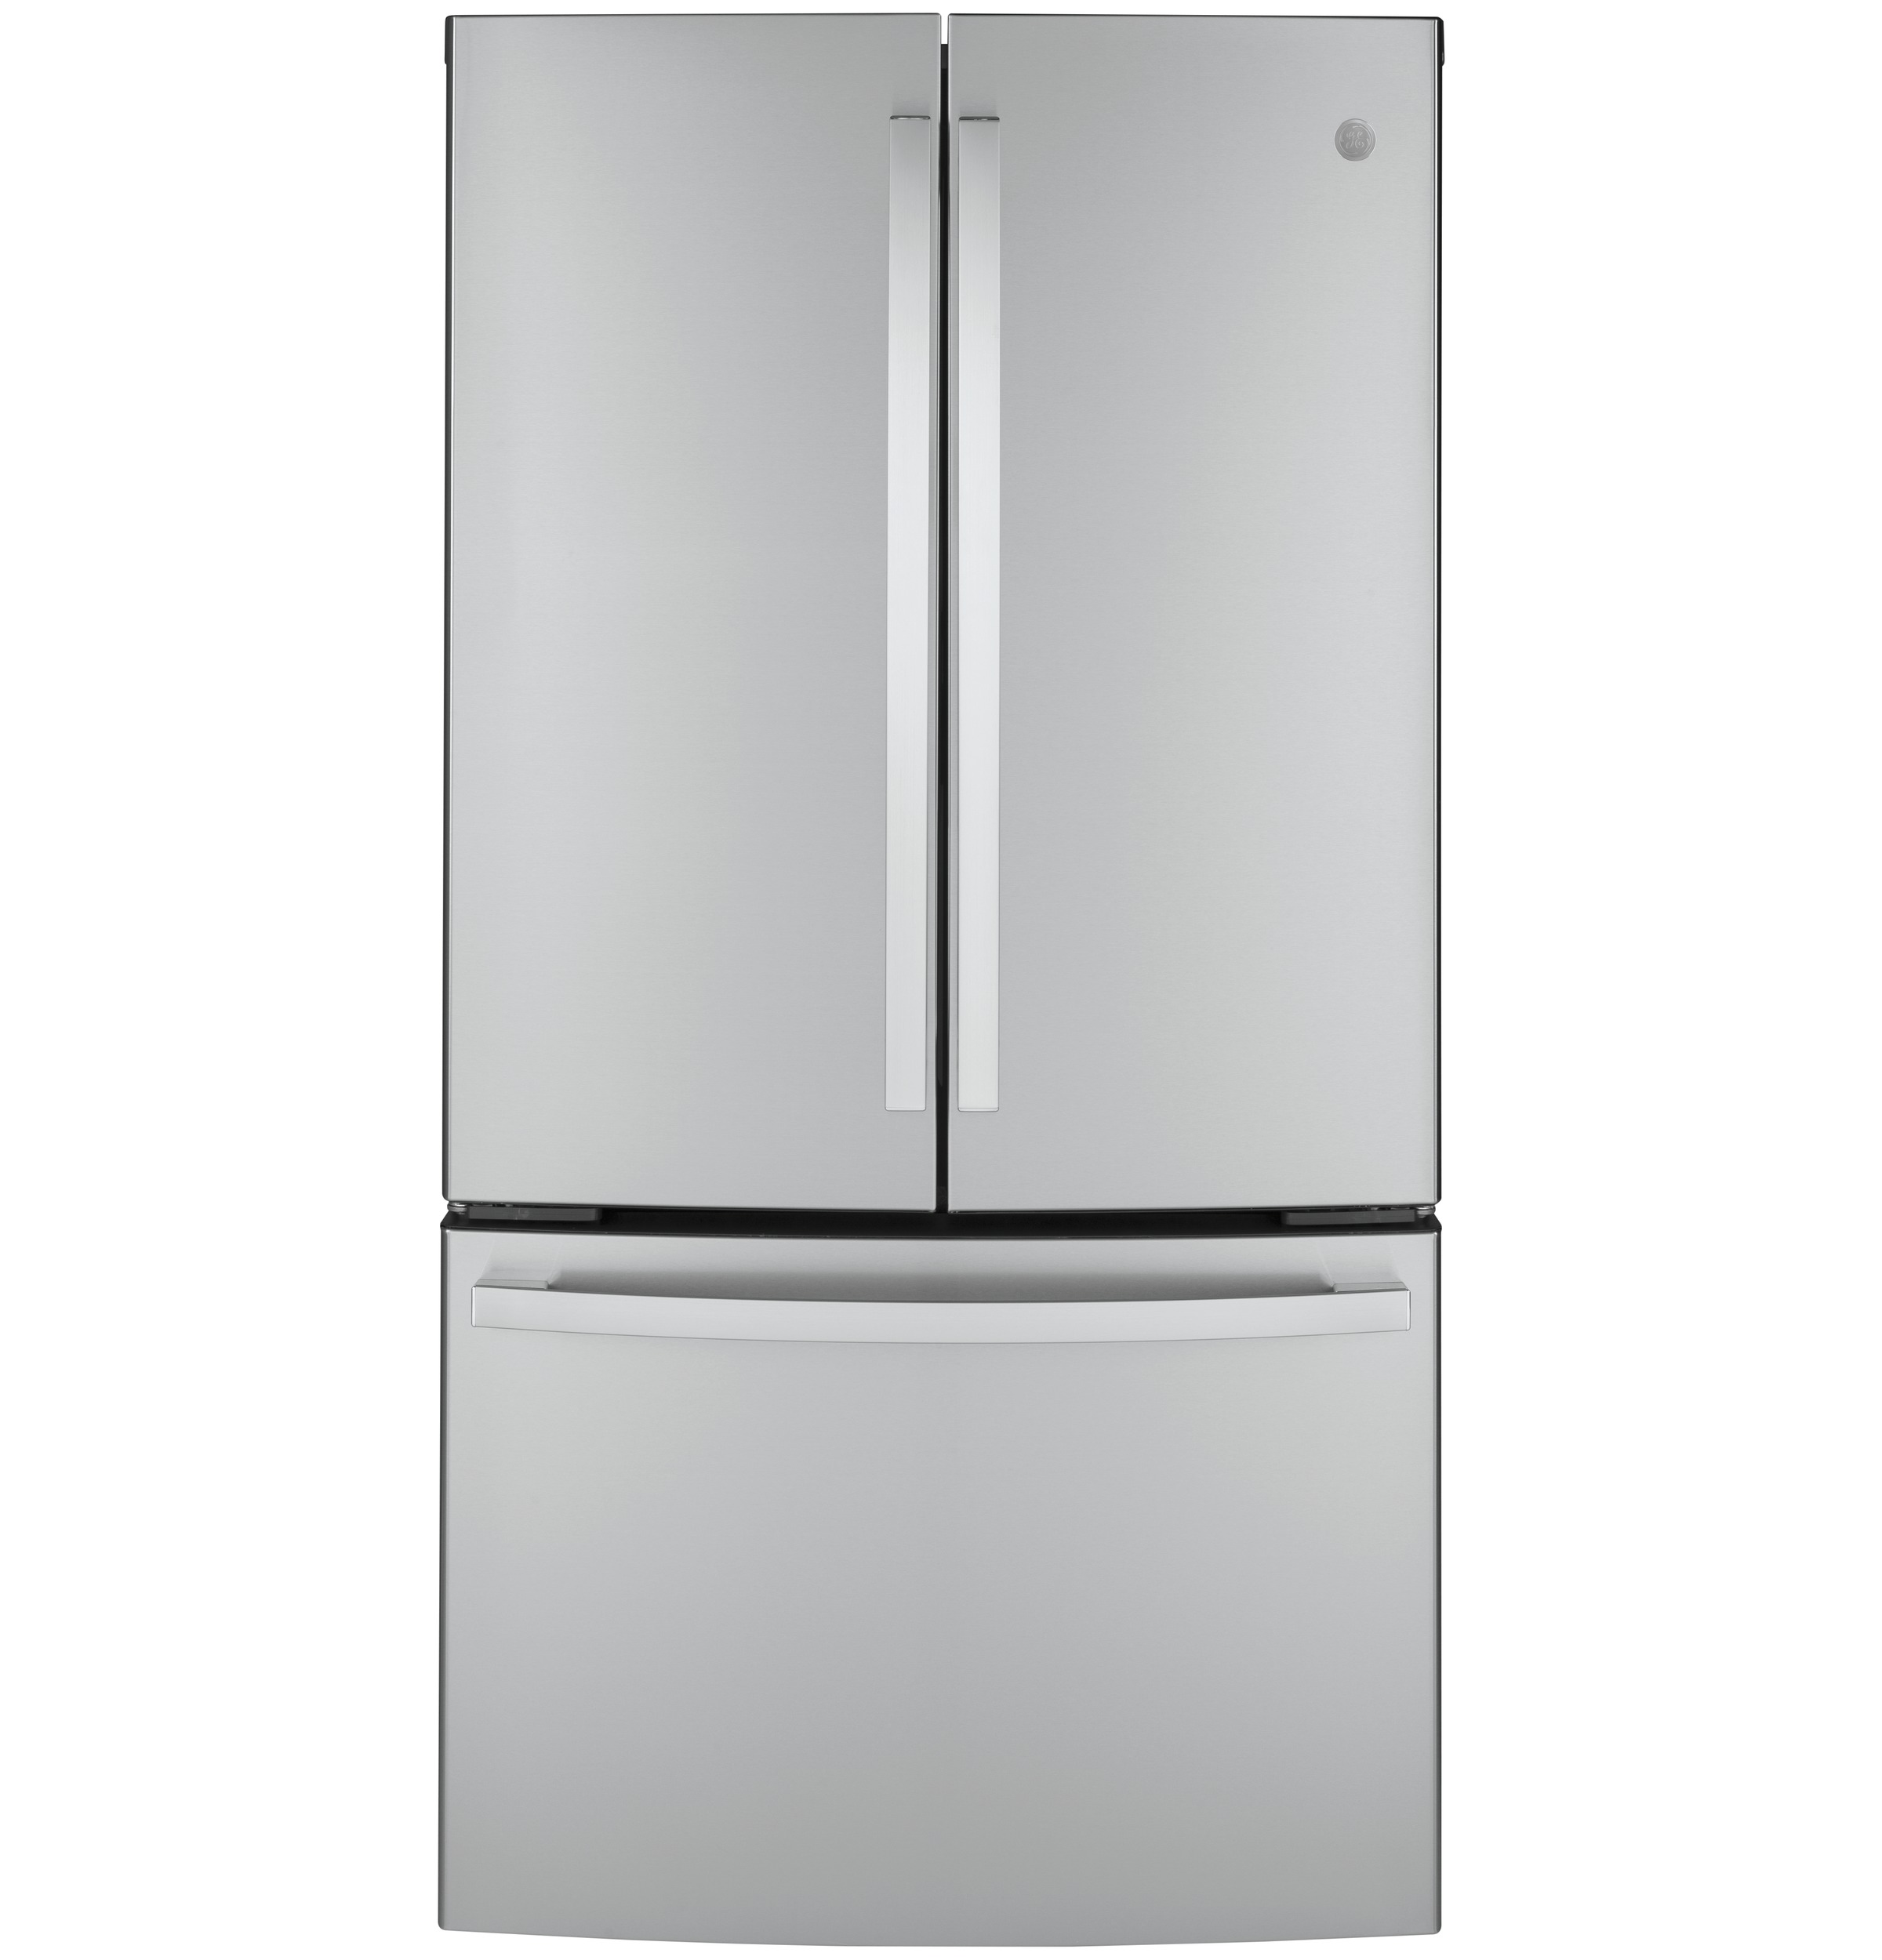 GE GE® ENERGY STAR® 23.1 Cu. Ft. Counter-Depth Fingerprint Resistant French-Door Refrigerator